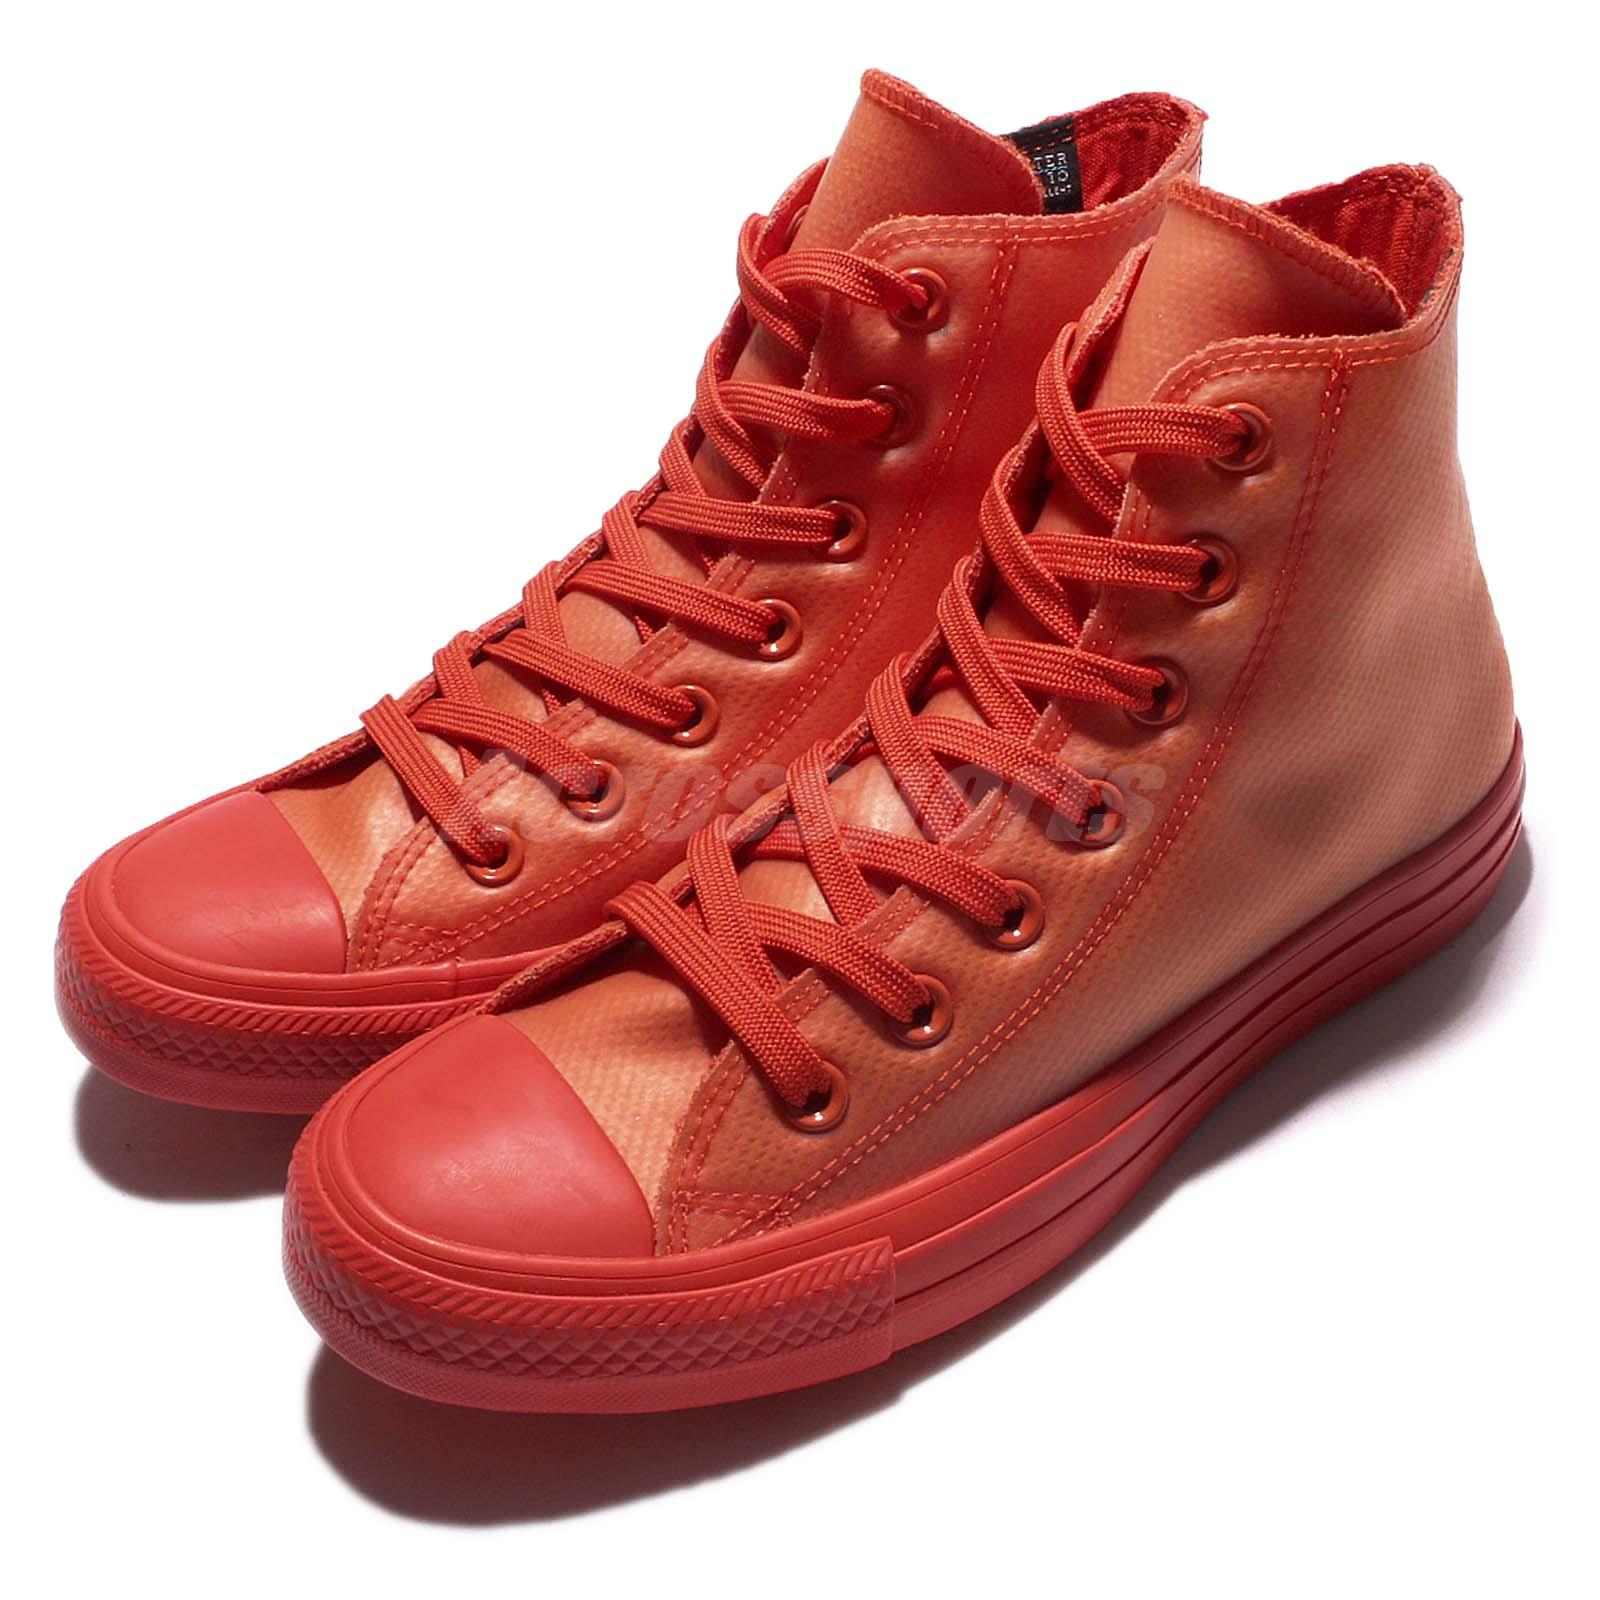 e2e305c64936 Details about Converse Chuck Taylor All Star Translucent Rubber High Top  Red Men Shoes153802C